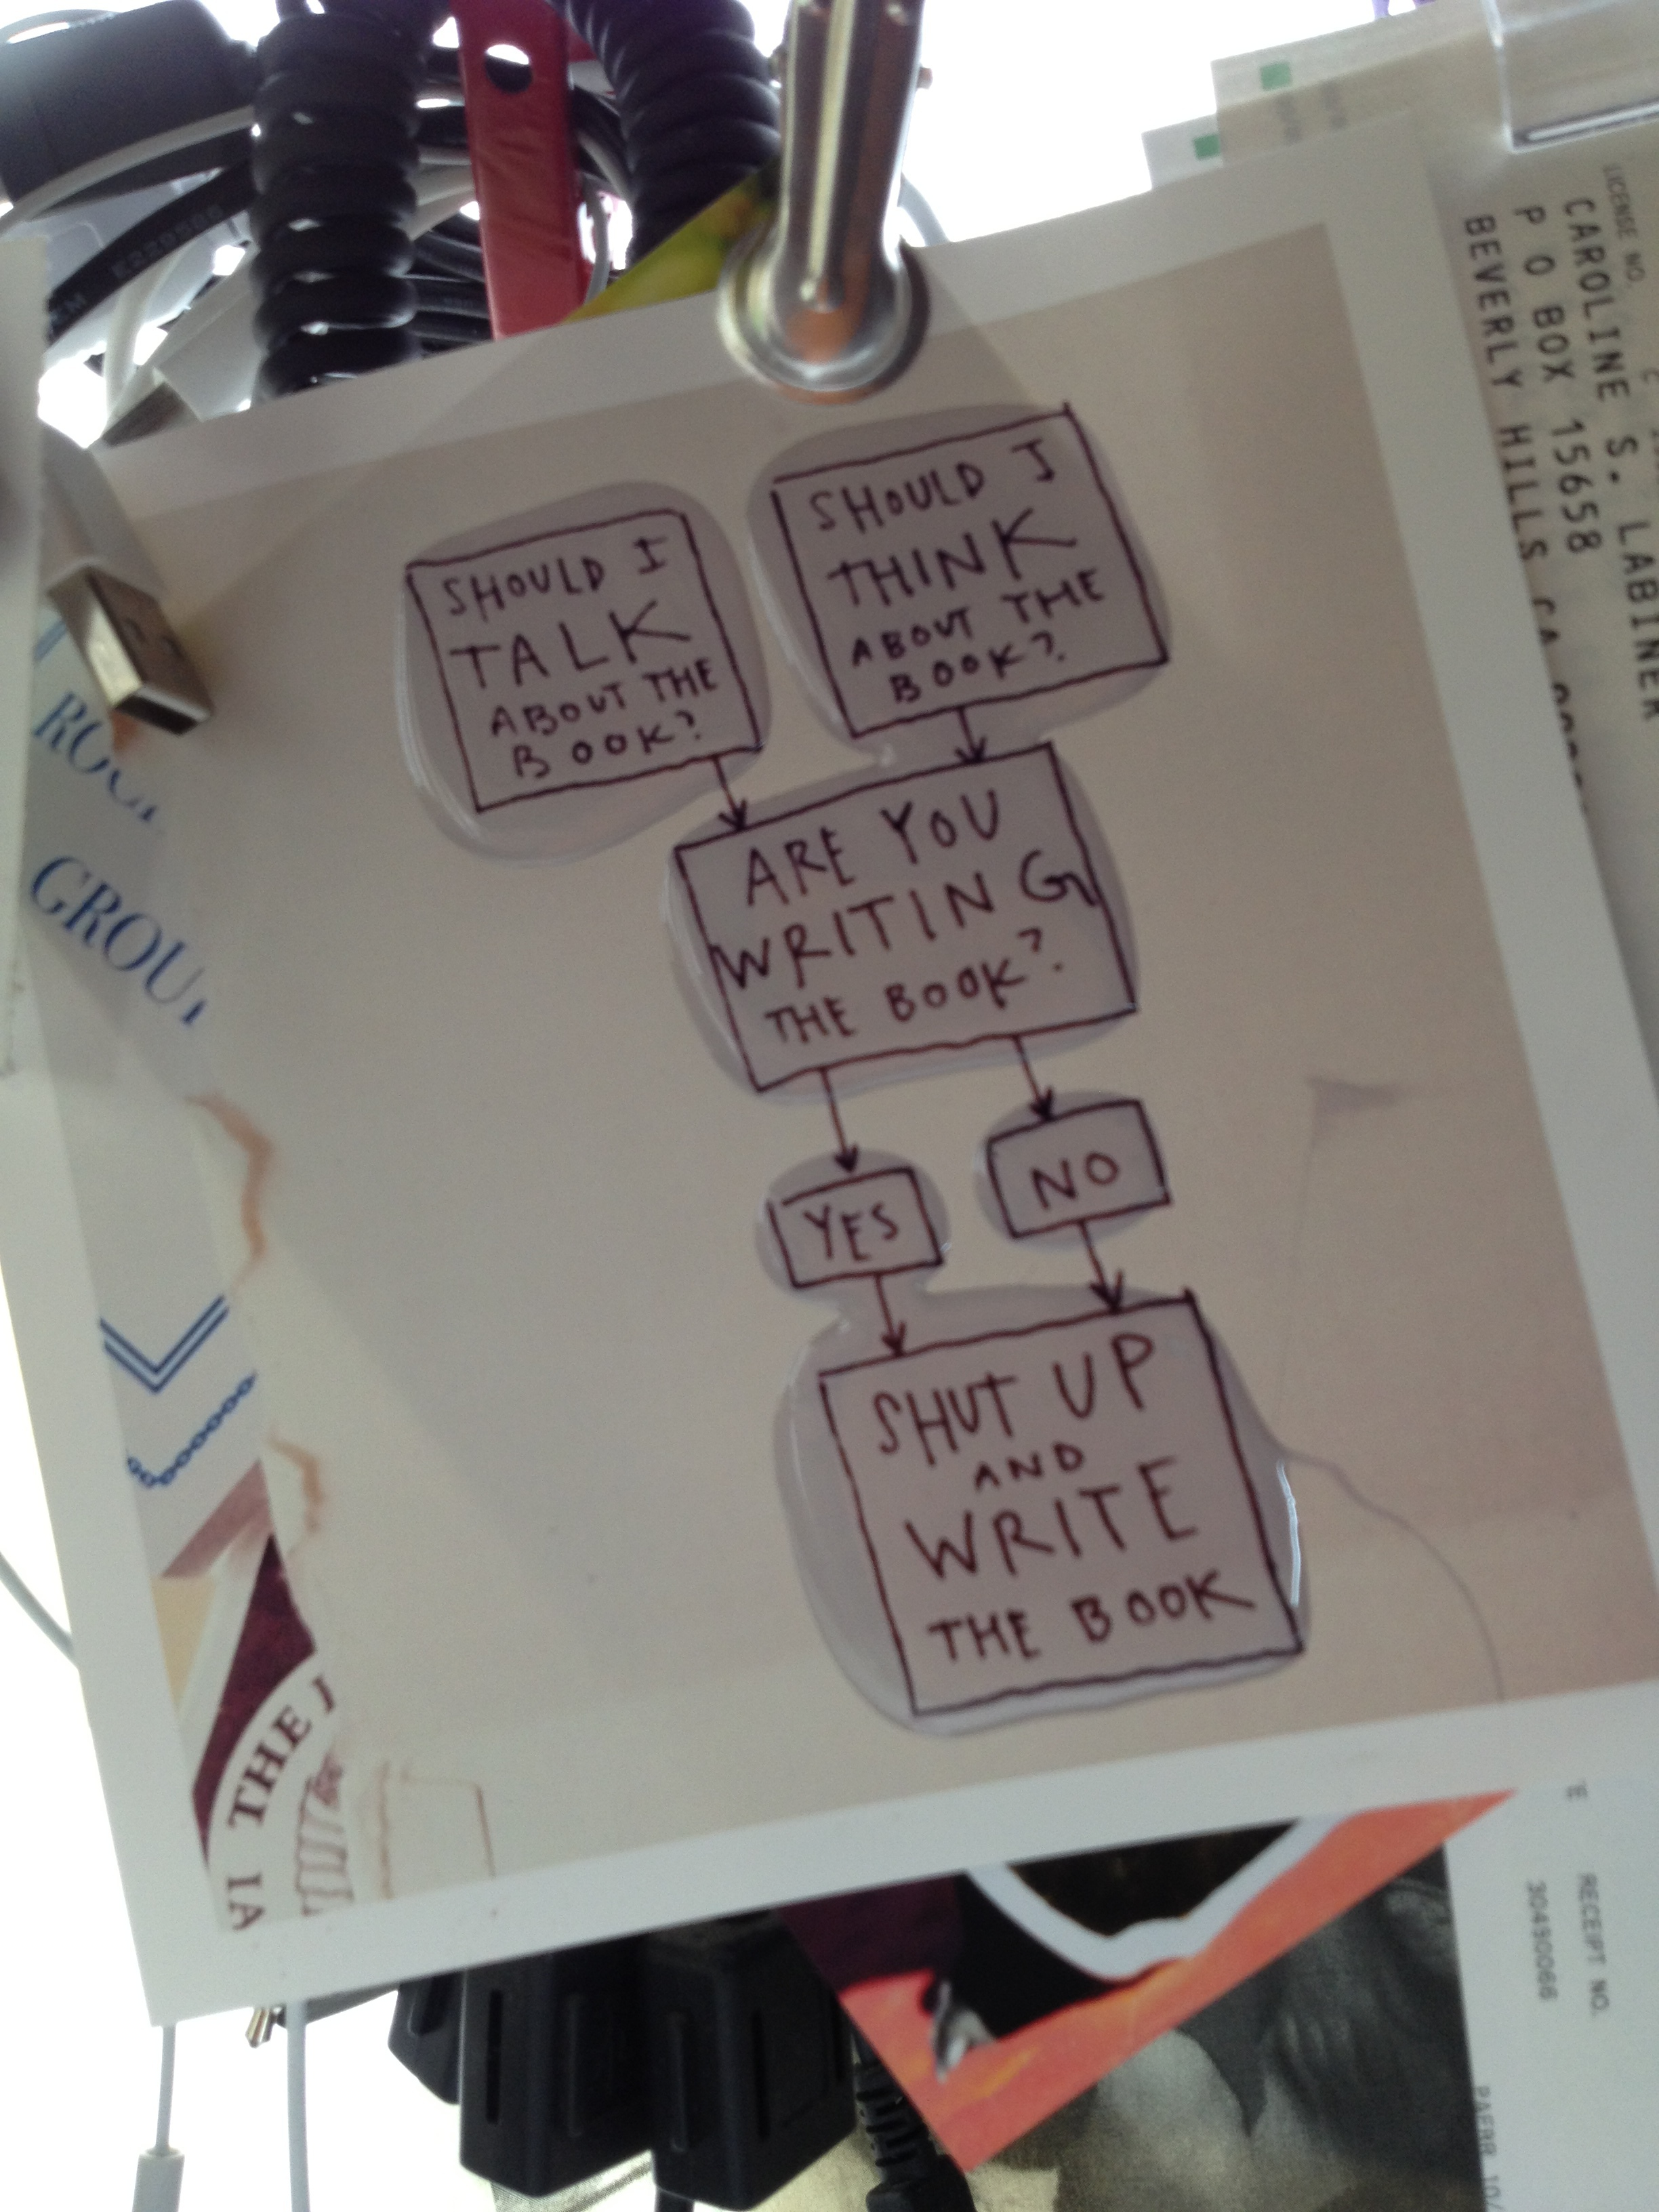 Playing with a copy of one of Kleon's pithy thoughts and some clear resin for a different project....